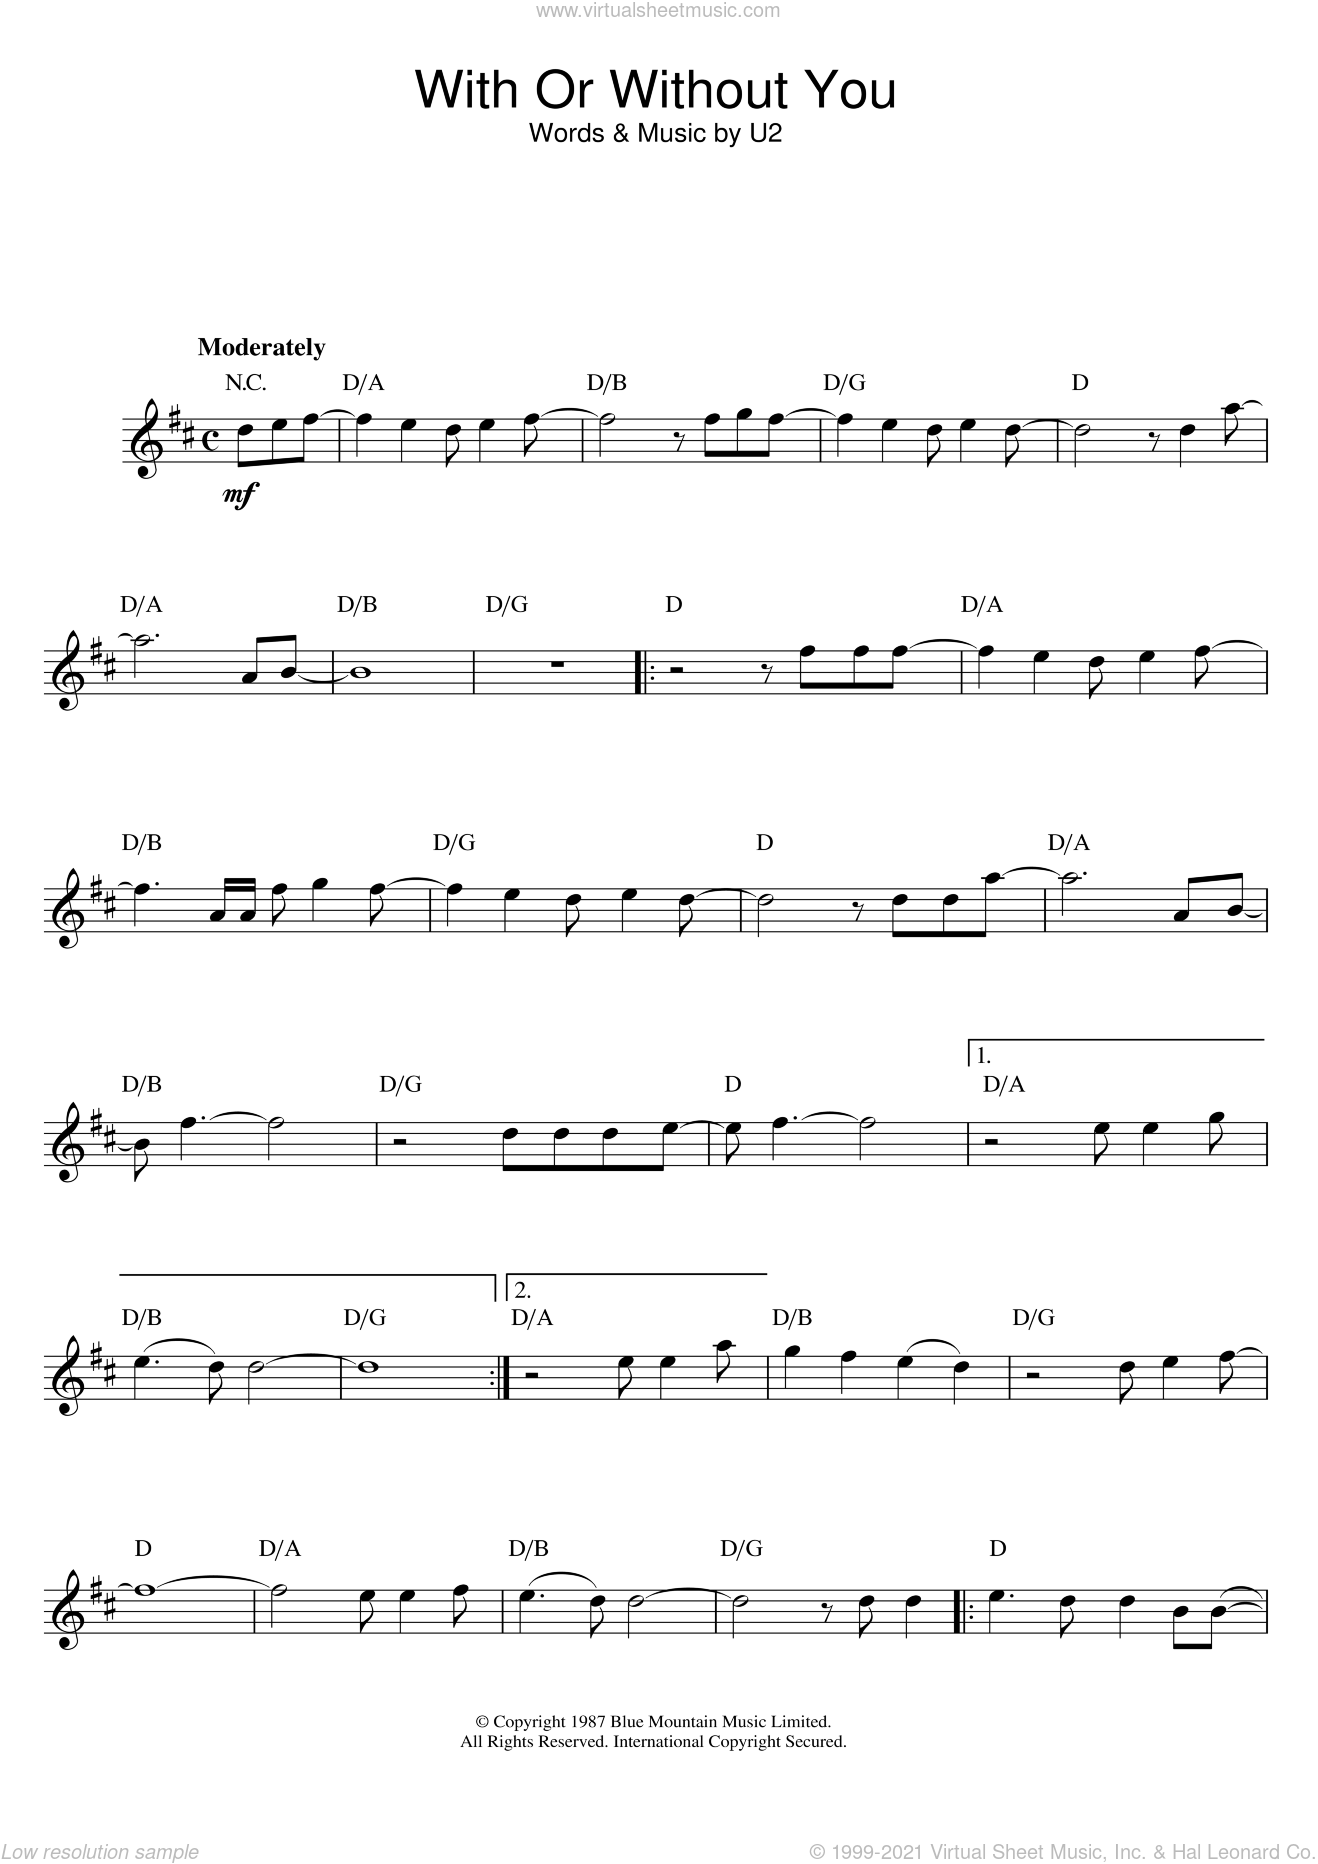 With Or Without You sheet music for flute solo by U2, intermediate skill level